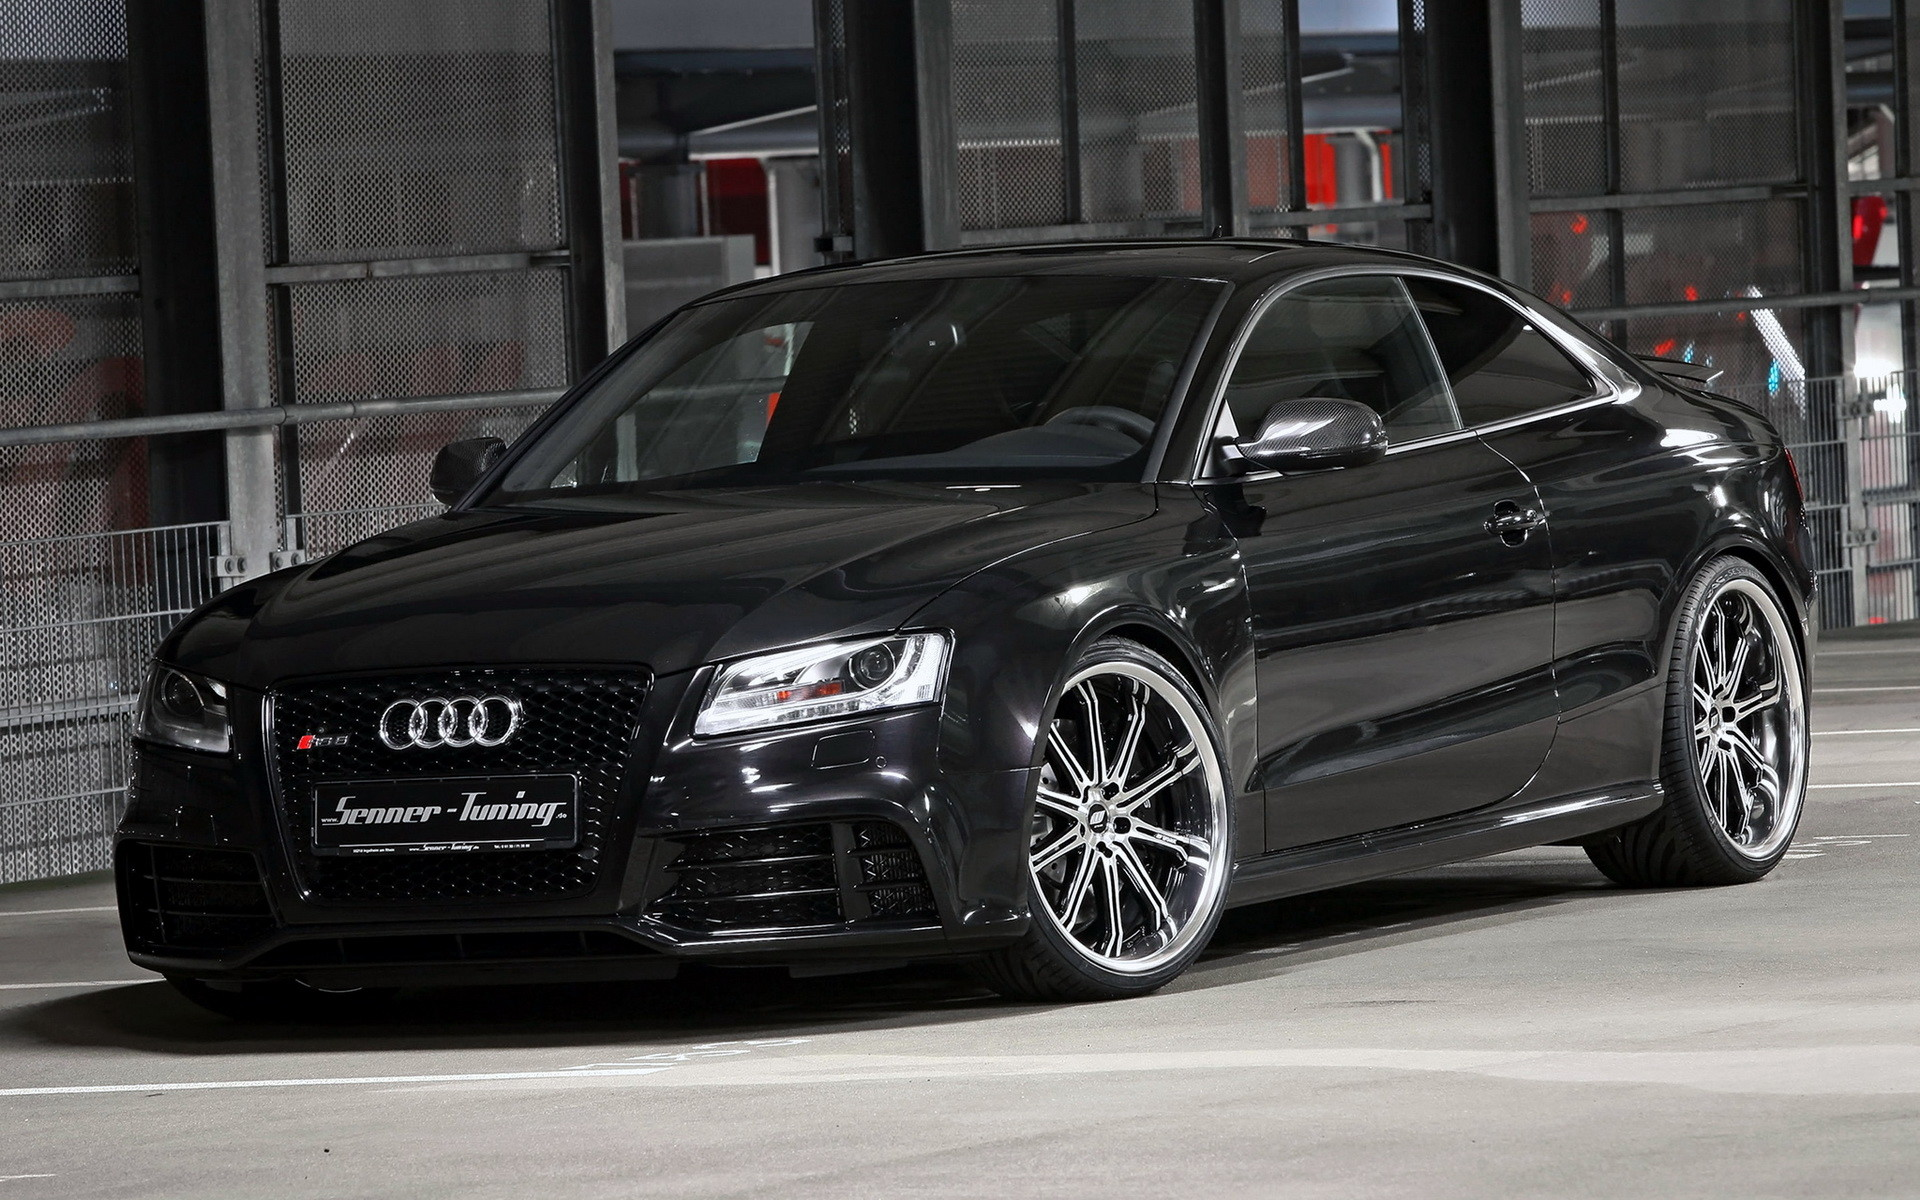 1920x1200 Download Wallpaper 1920x1080 Audi, S5, Tuning, Wheels, Side view .